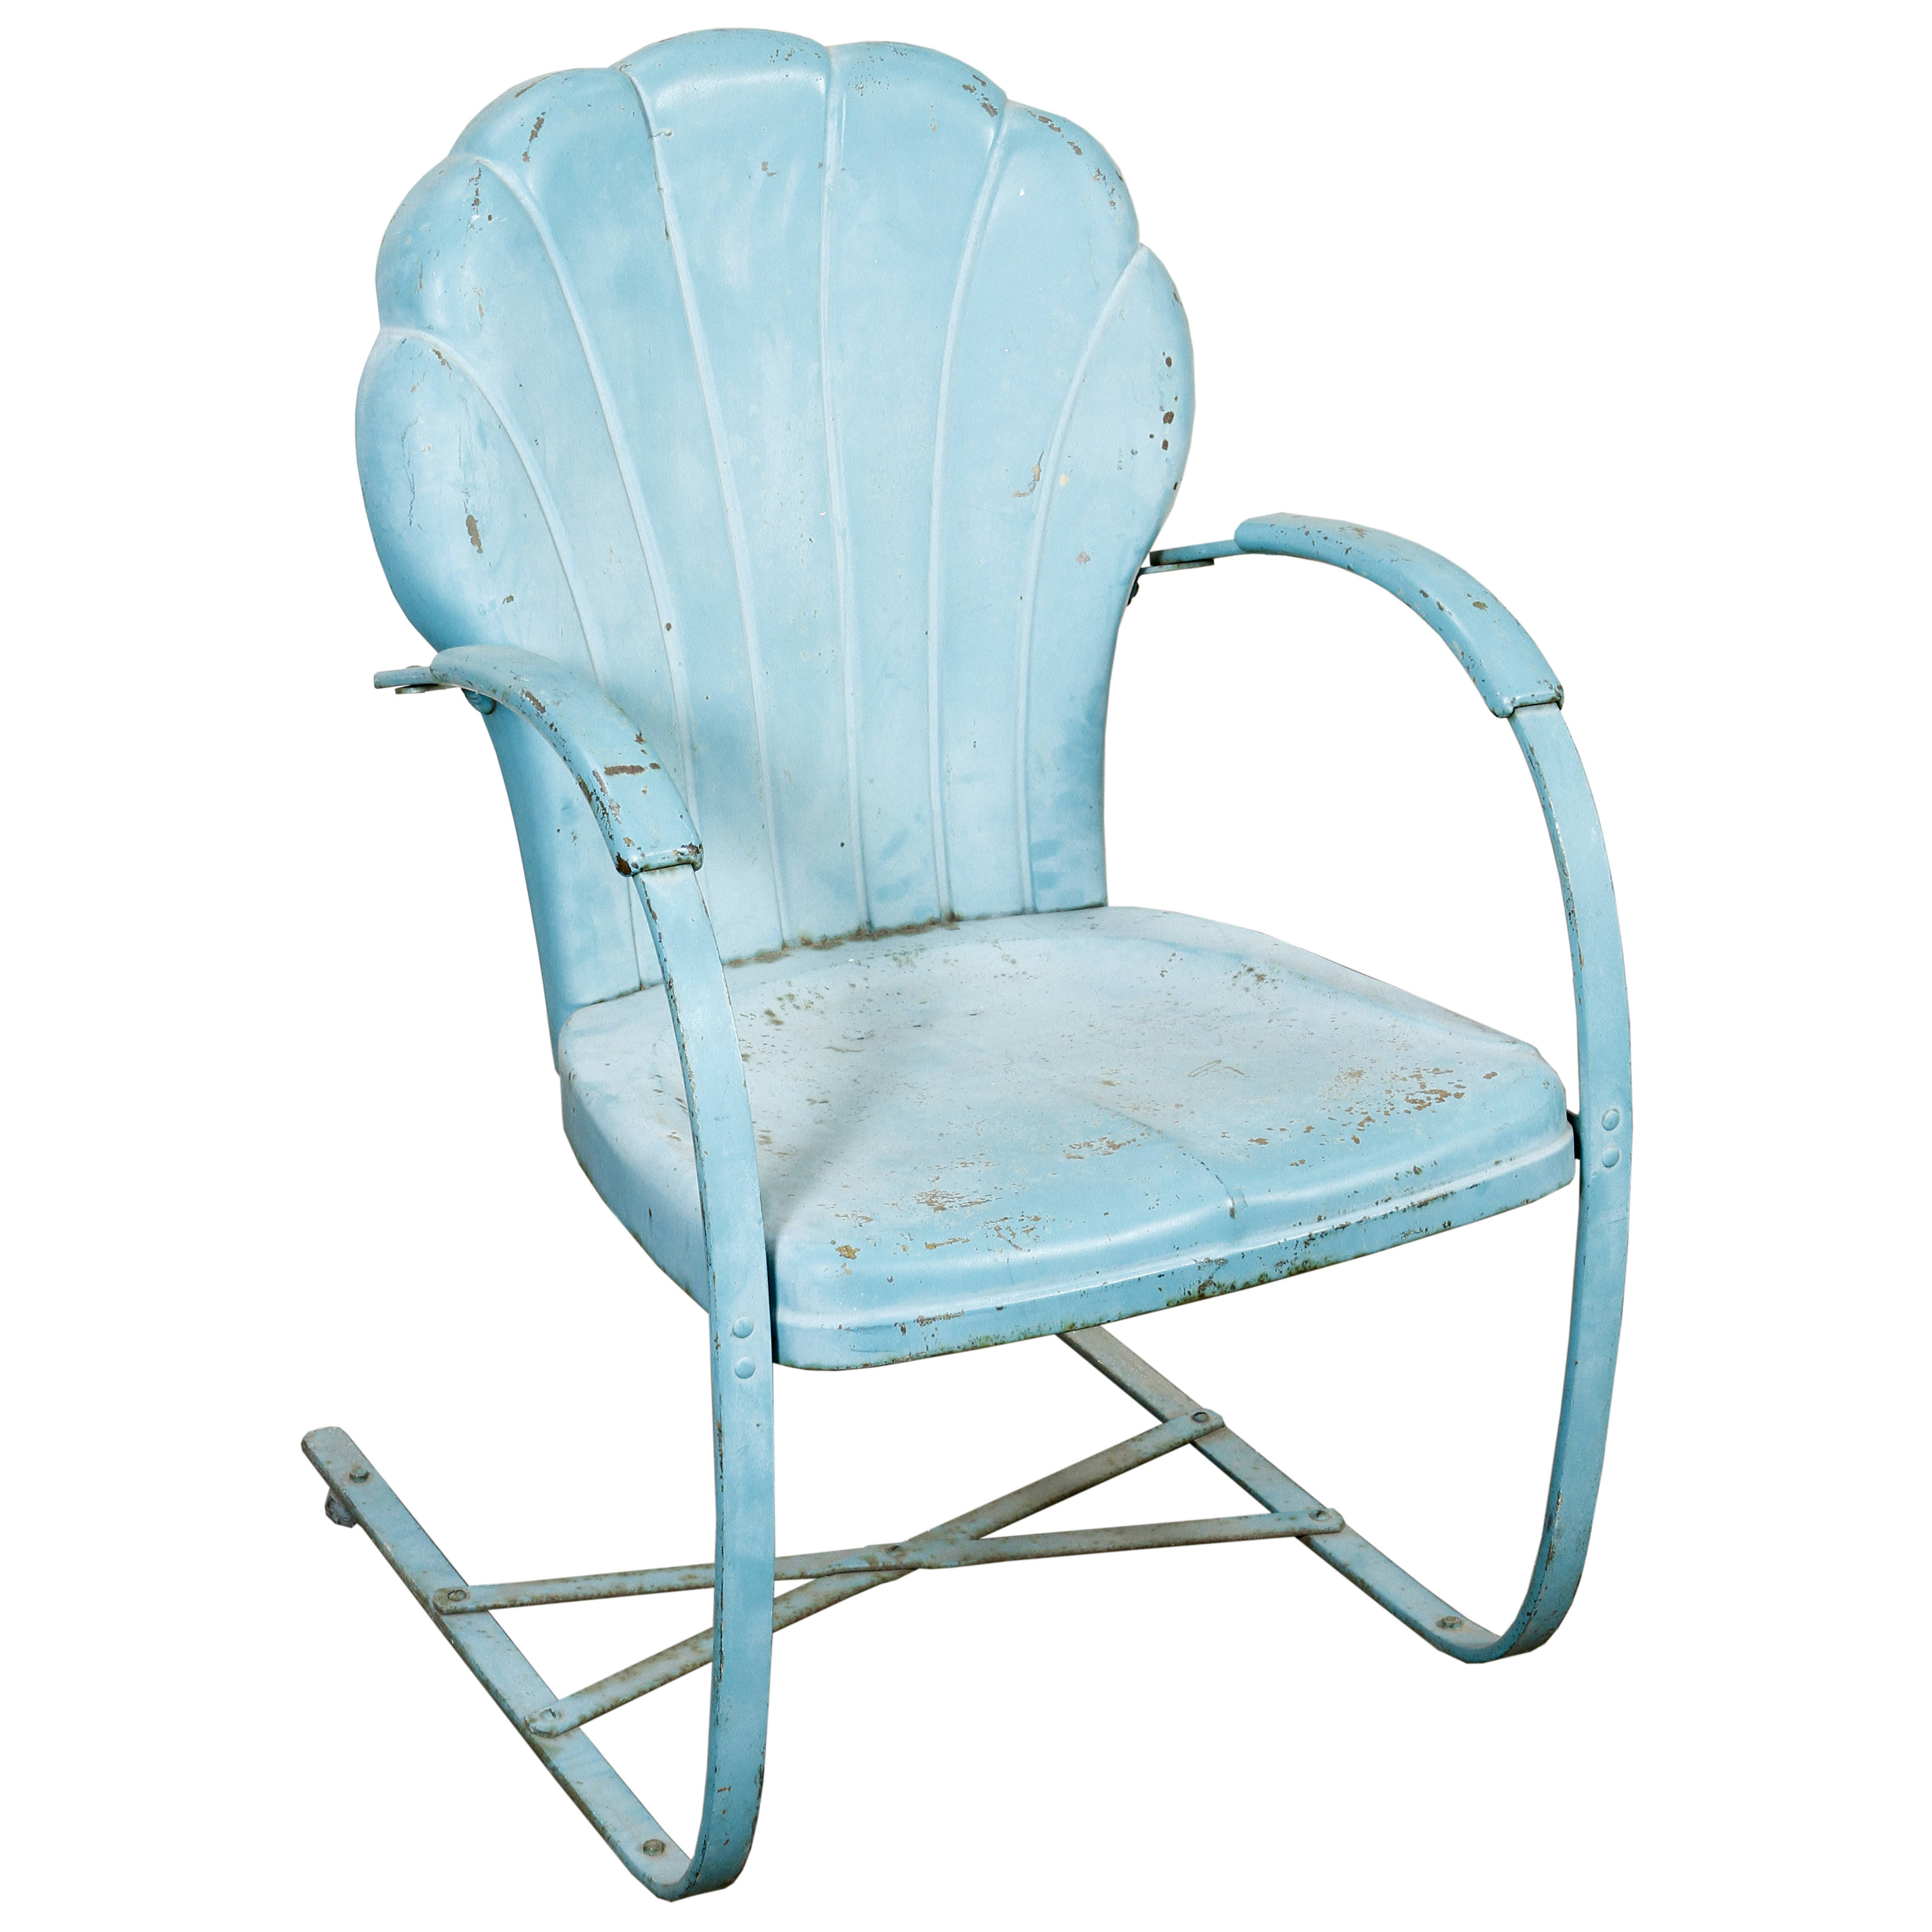 turquoise patio chairs brighton blue egg chair bistro garden furniture set lawn shell back air designs